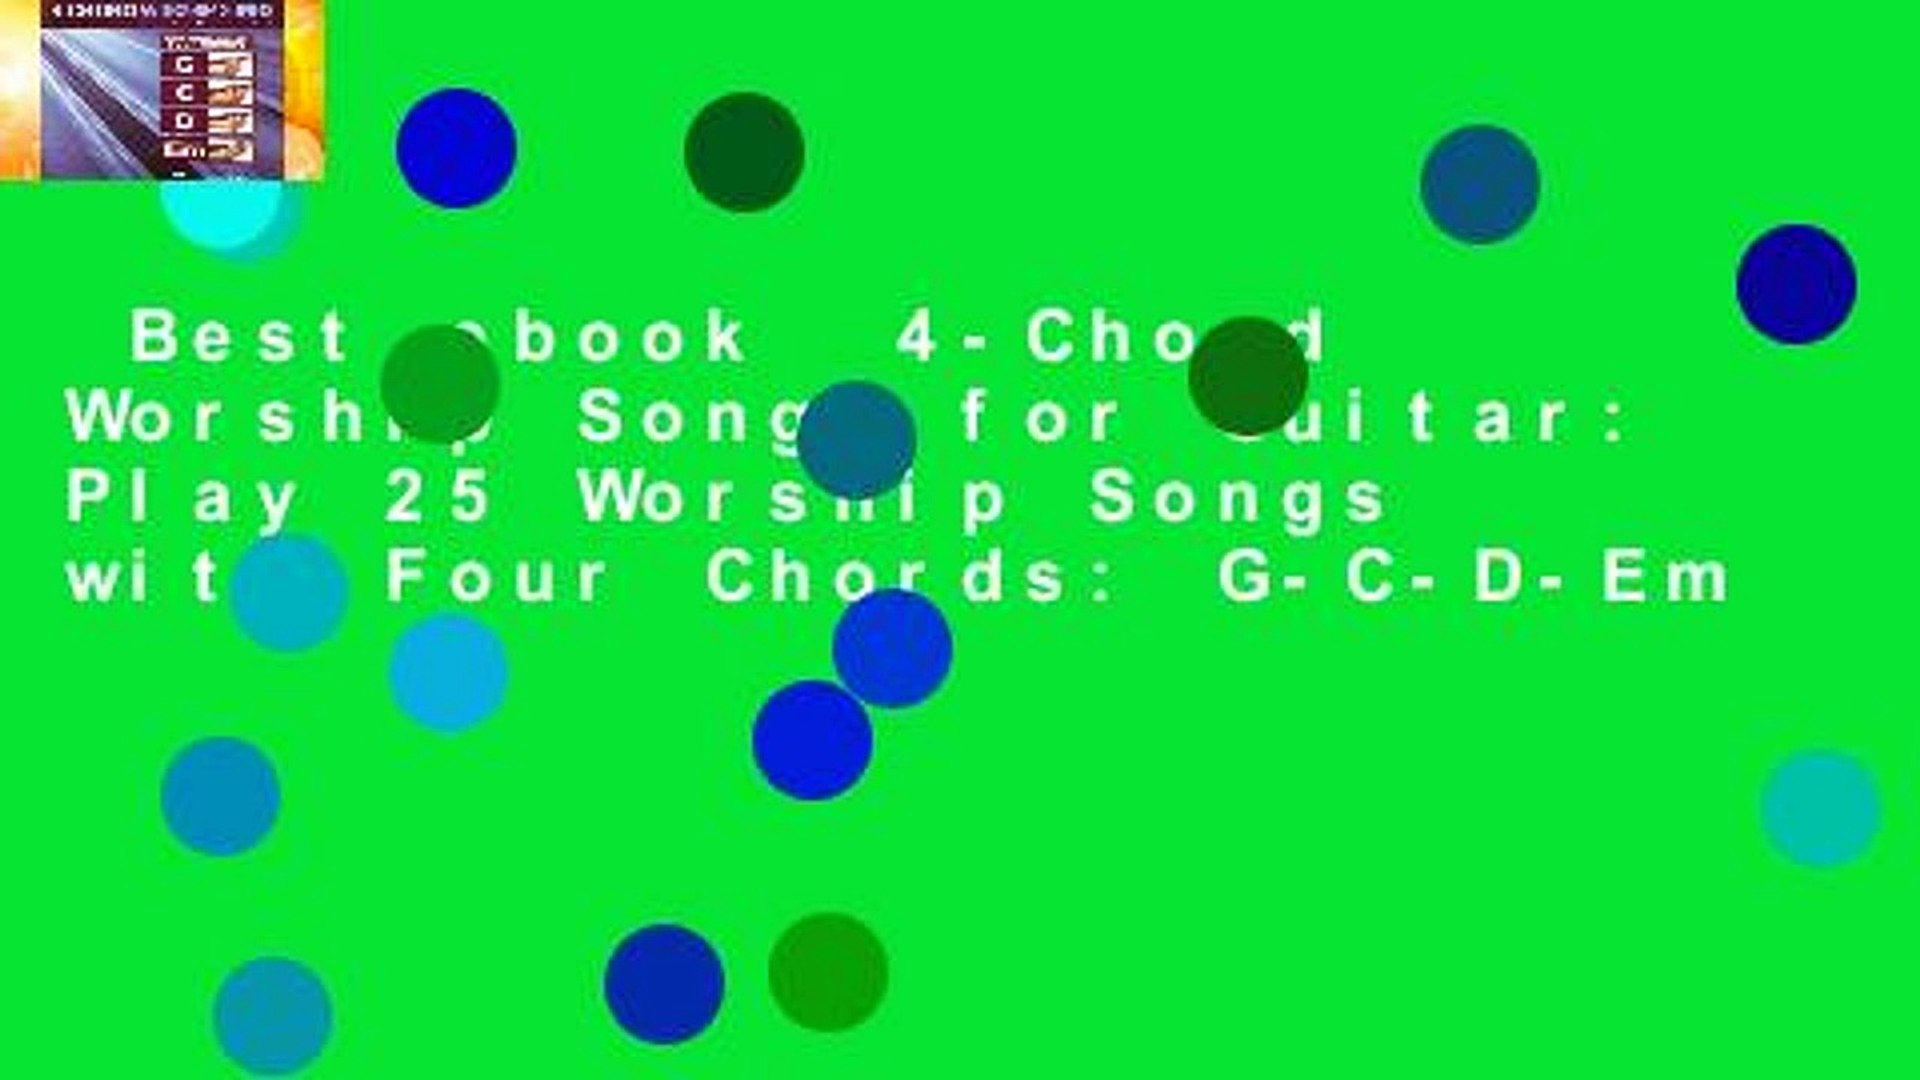 4 Chord Song Best Ebook 4 Chord Worship Songs For Guitar Play 25 Worship Songs With Four Chords G C D Em